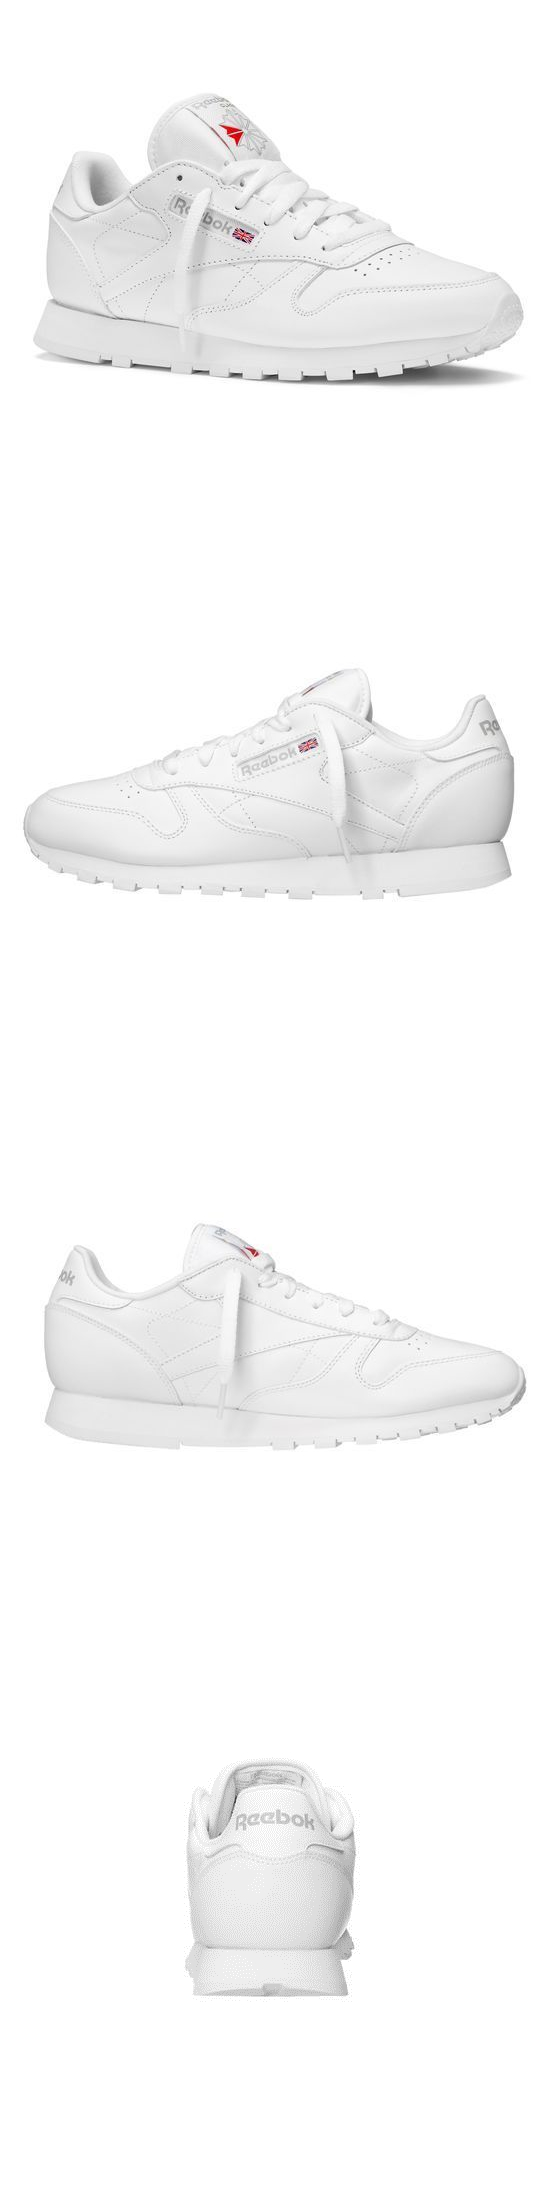 6026ed93794 Unisex Shoes 155202  Reebok Classic Leather (Gs) Youth Grade School White  Grey 71